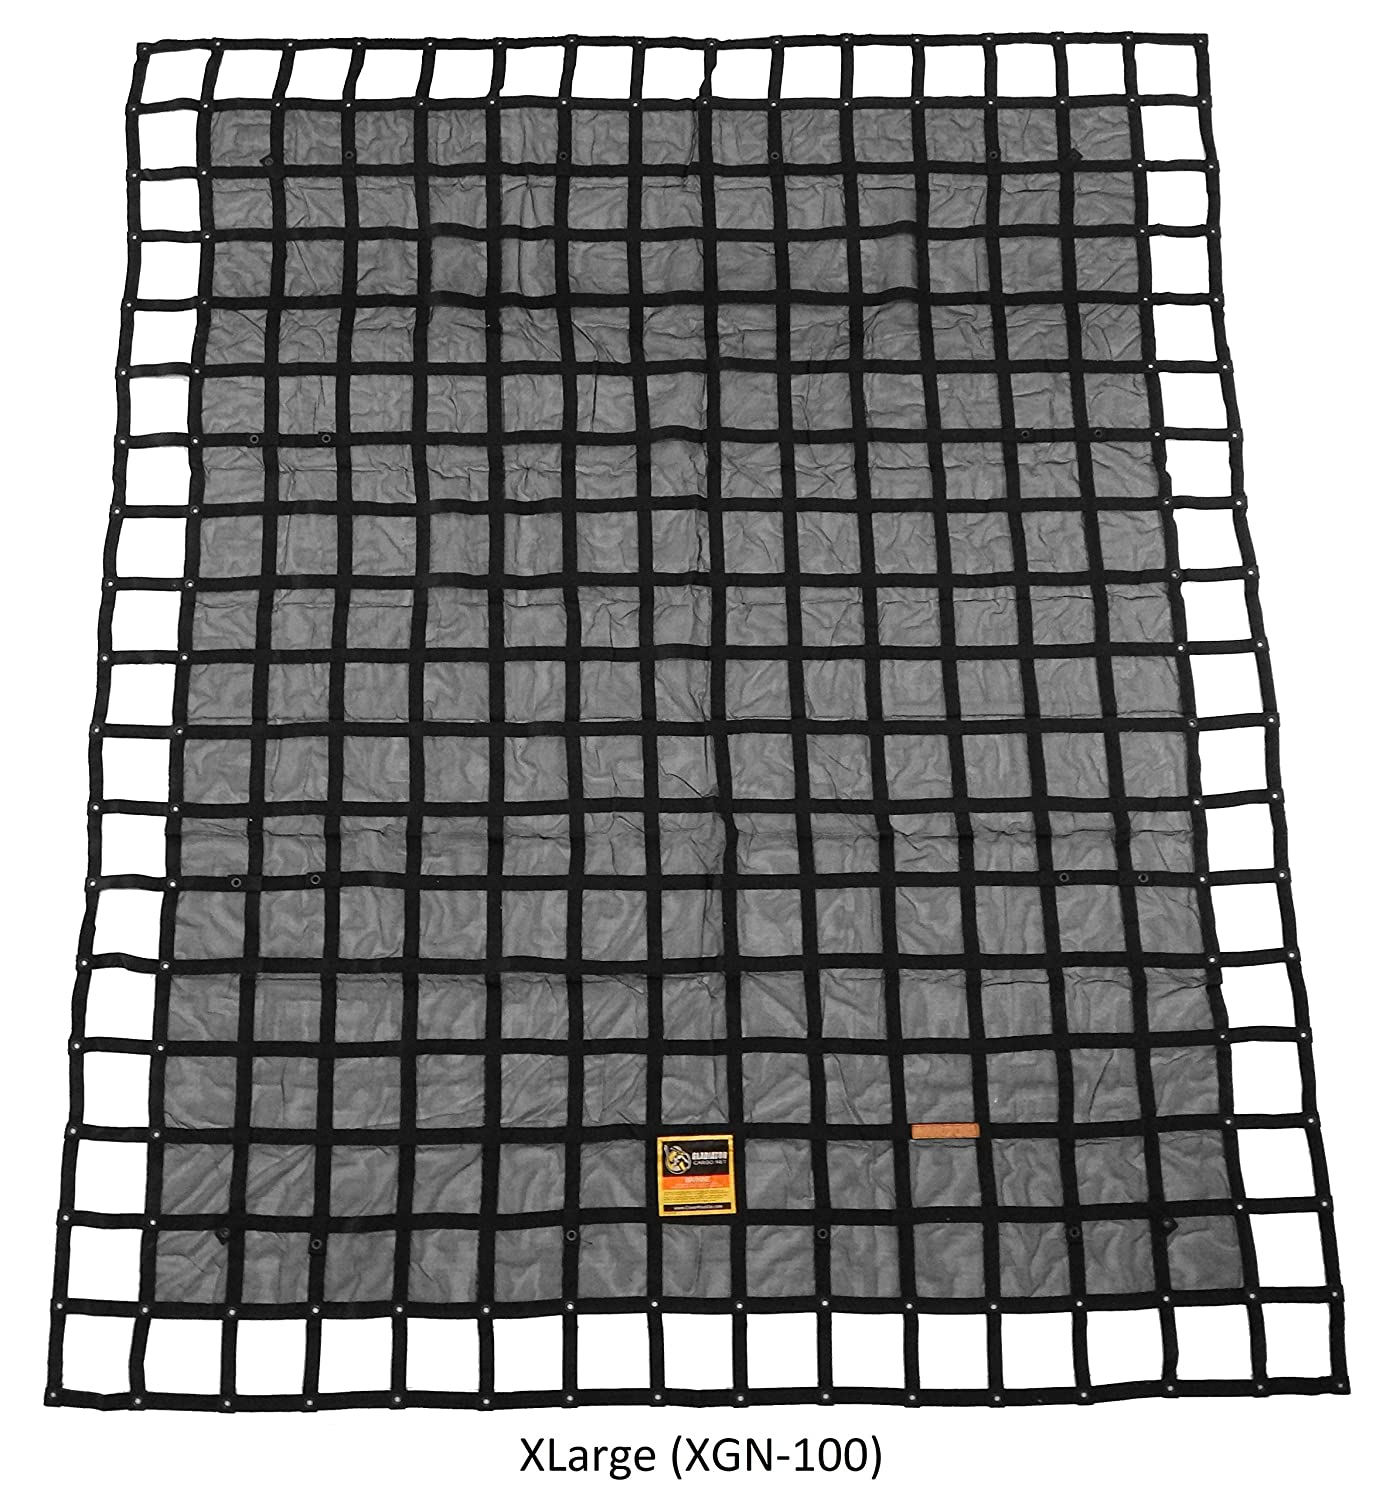 Gladiator Cargo Net - Heavy Duty Truck Cargo Net - Small (SGN-100) 4.75' x 6' ft. Gladiator Cargo Gear